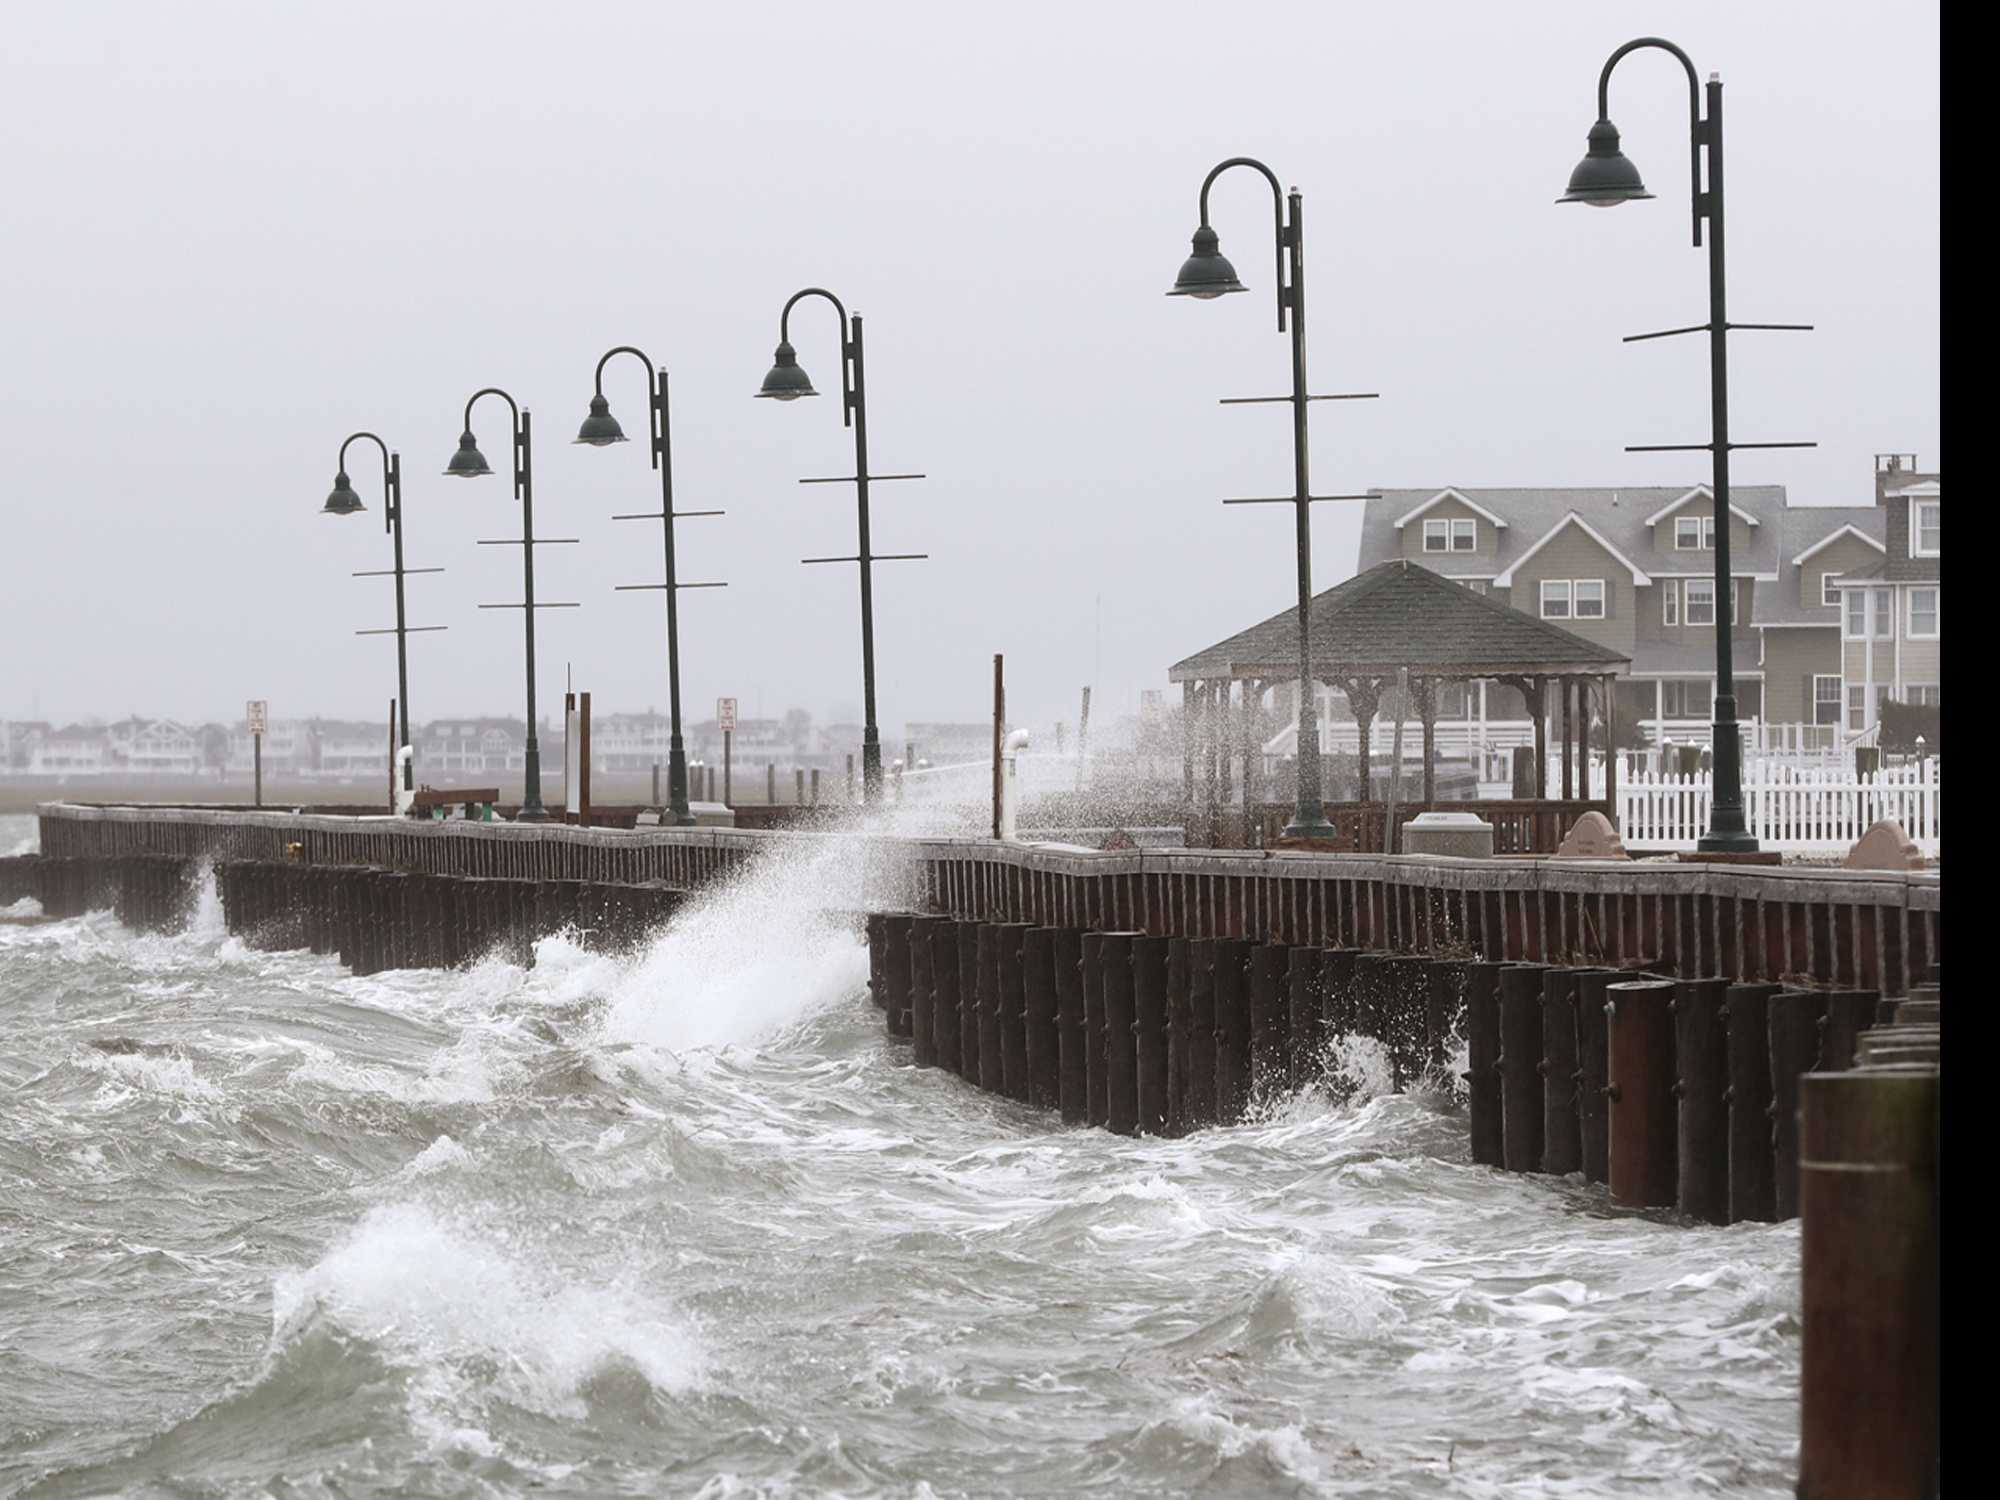 Report: U.S. High-Tide Flooding Twice What It Was 30 Years Ago